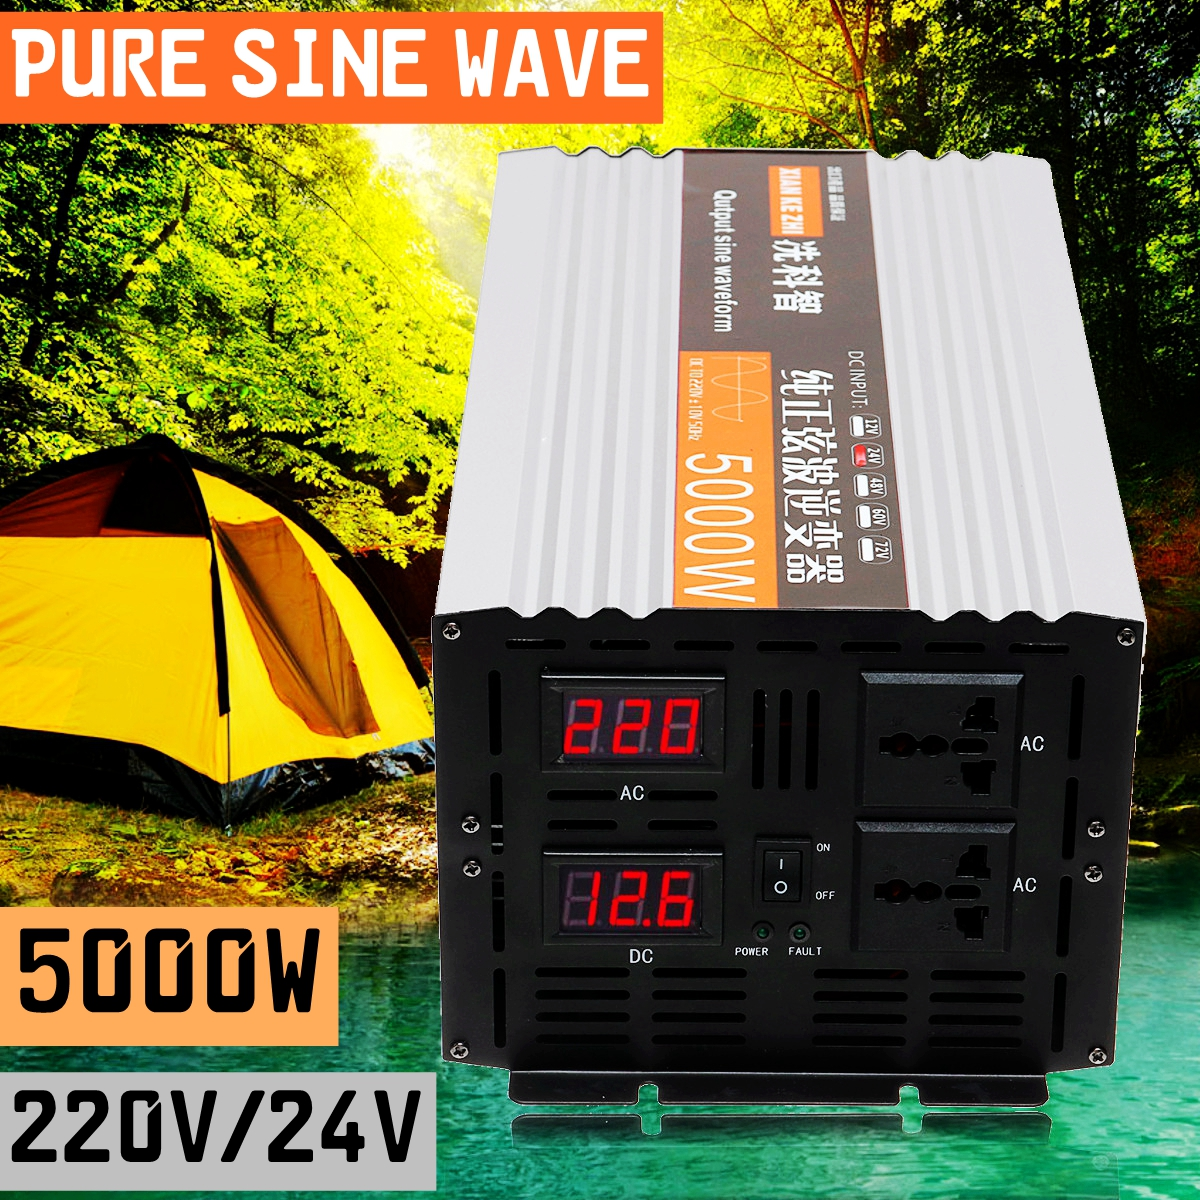 2500W-5000W-Peak-Pure-Sine-Wave-Power-Inverter-12V-24V-48V-220V-Converter